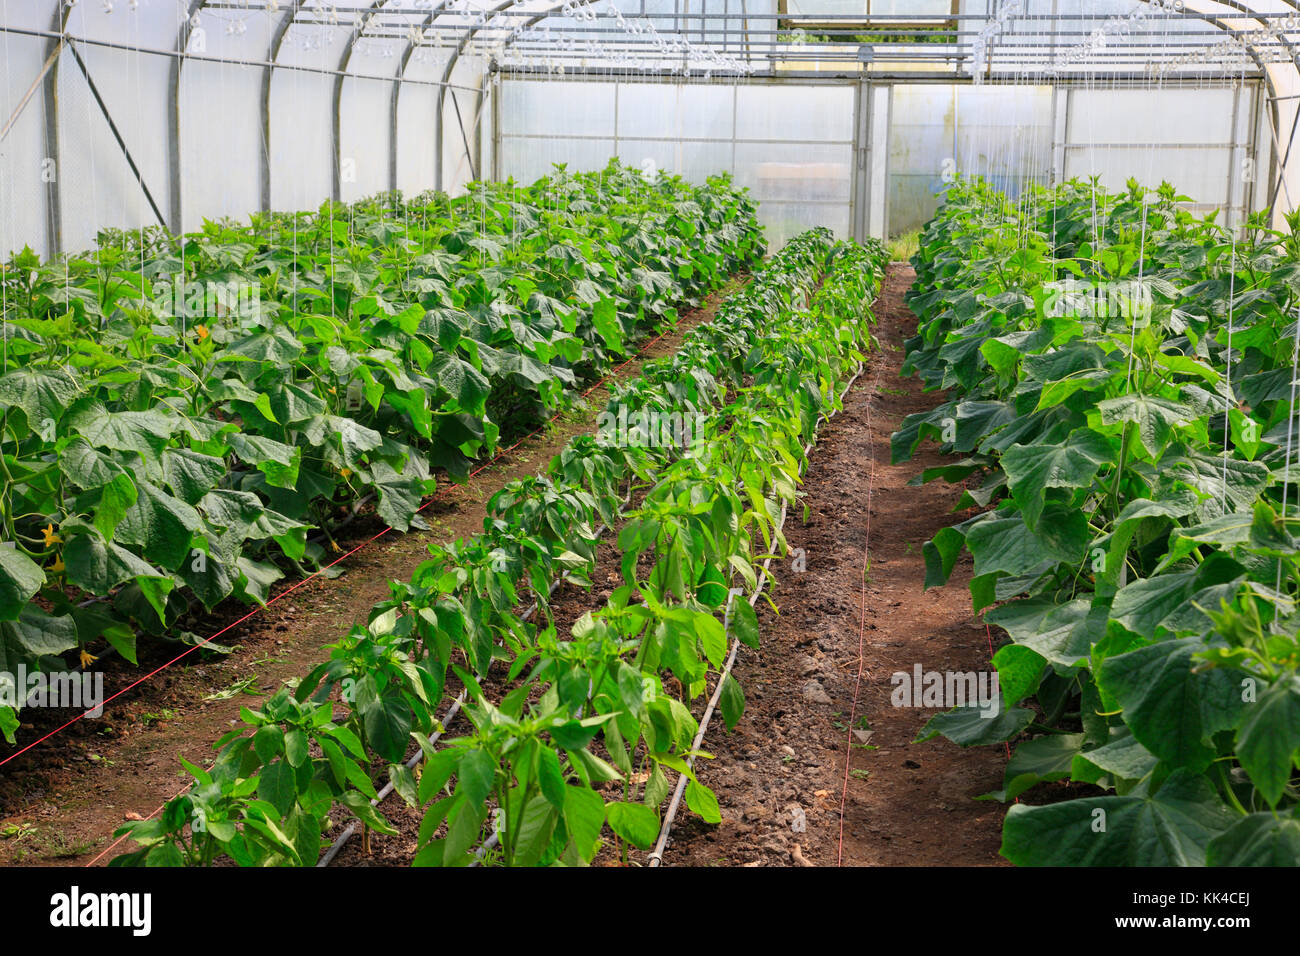 Green house, Ecovillage Sieben Linden near Beetzendorf / Salzwedel, Saxony-Anhalt, Germany, Europe - Stock Image